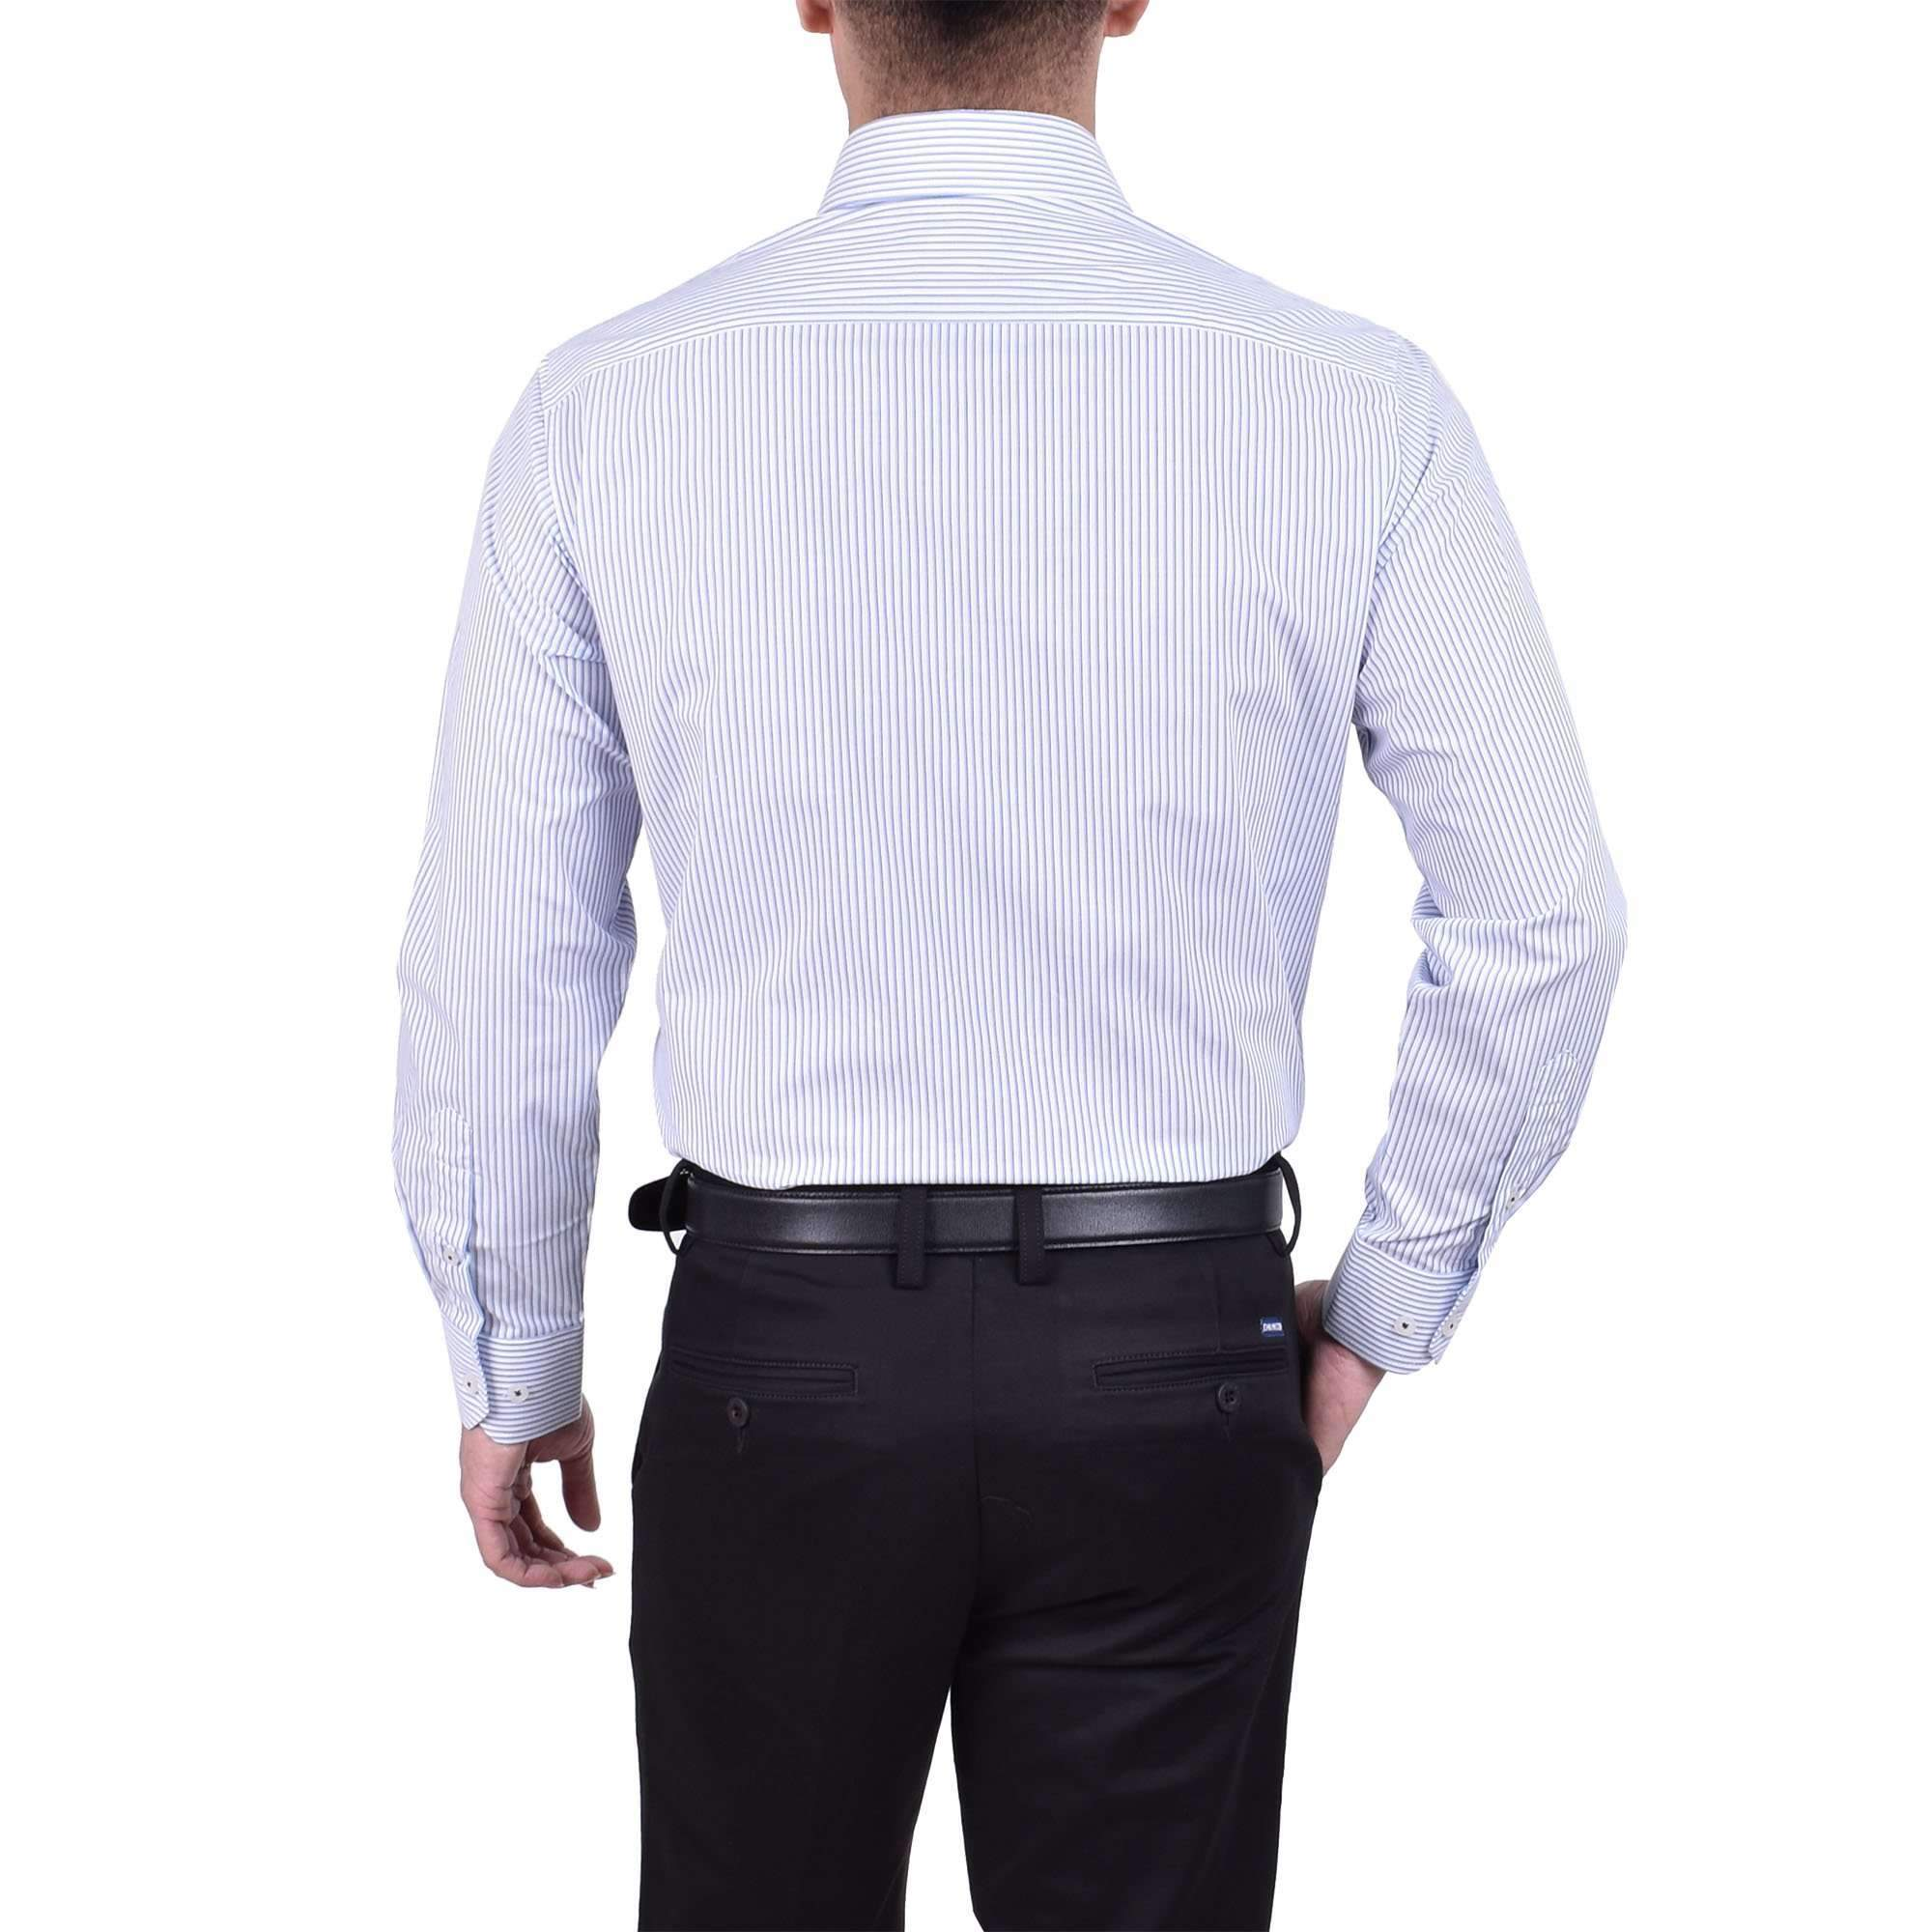 John Master Business Shirt Long Sleeve Light Blue 7087001 : Buy John Master online at CMG.MY